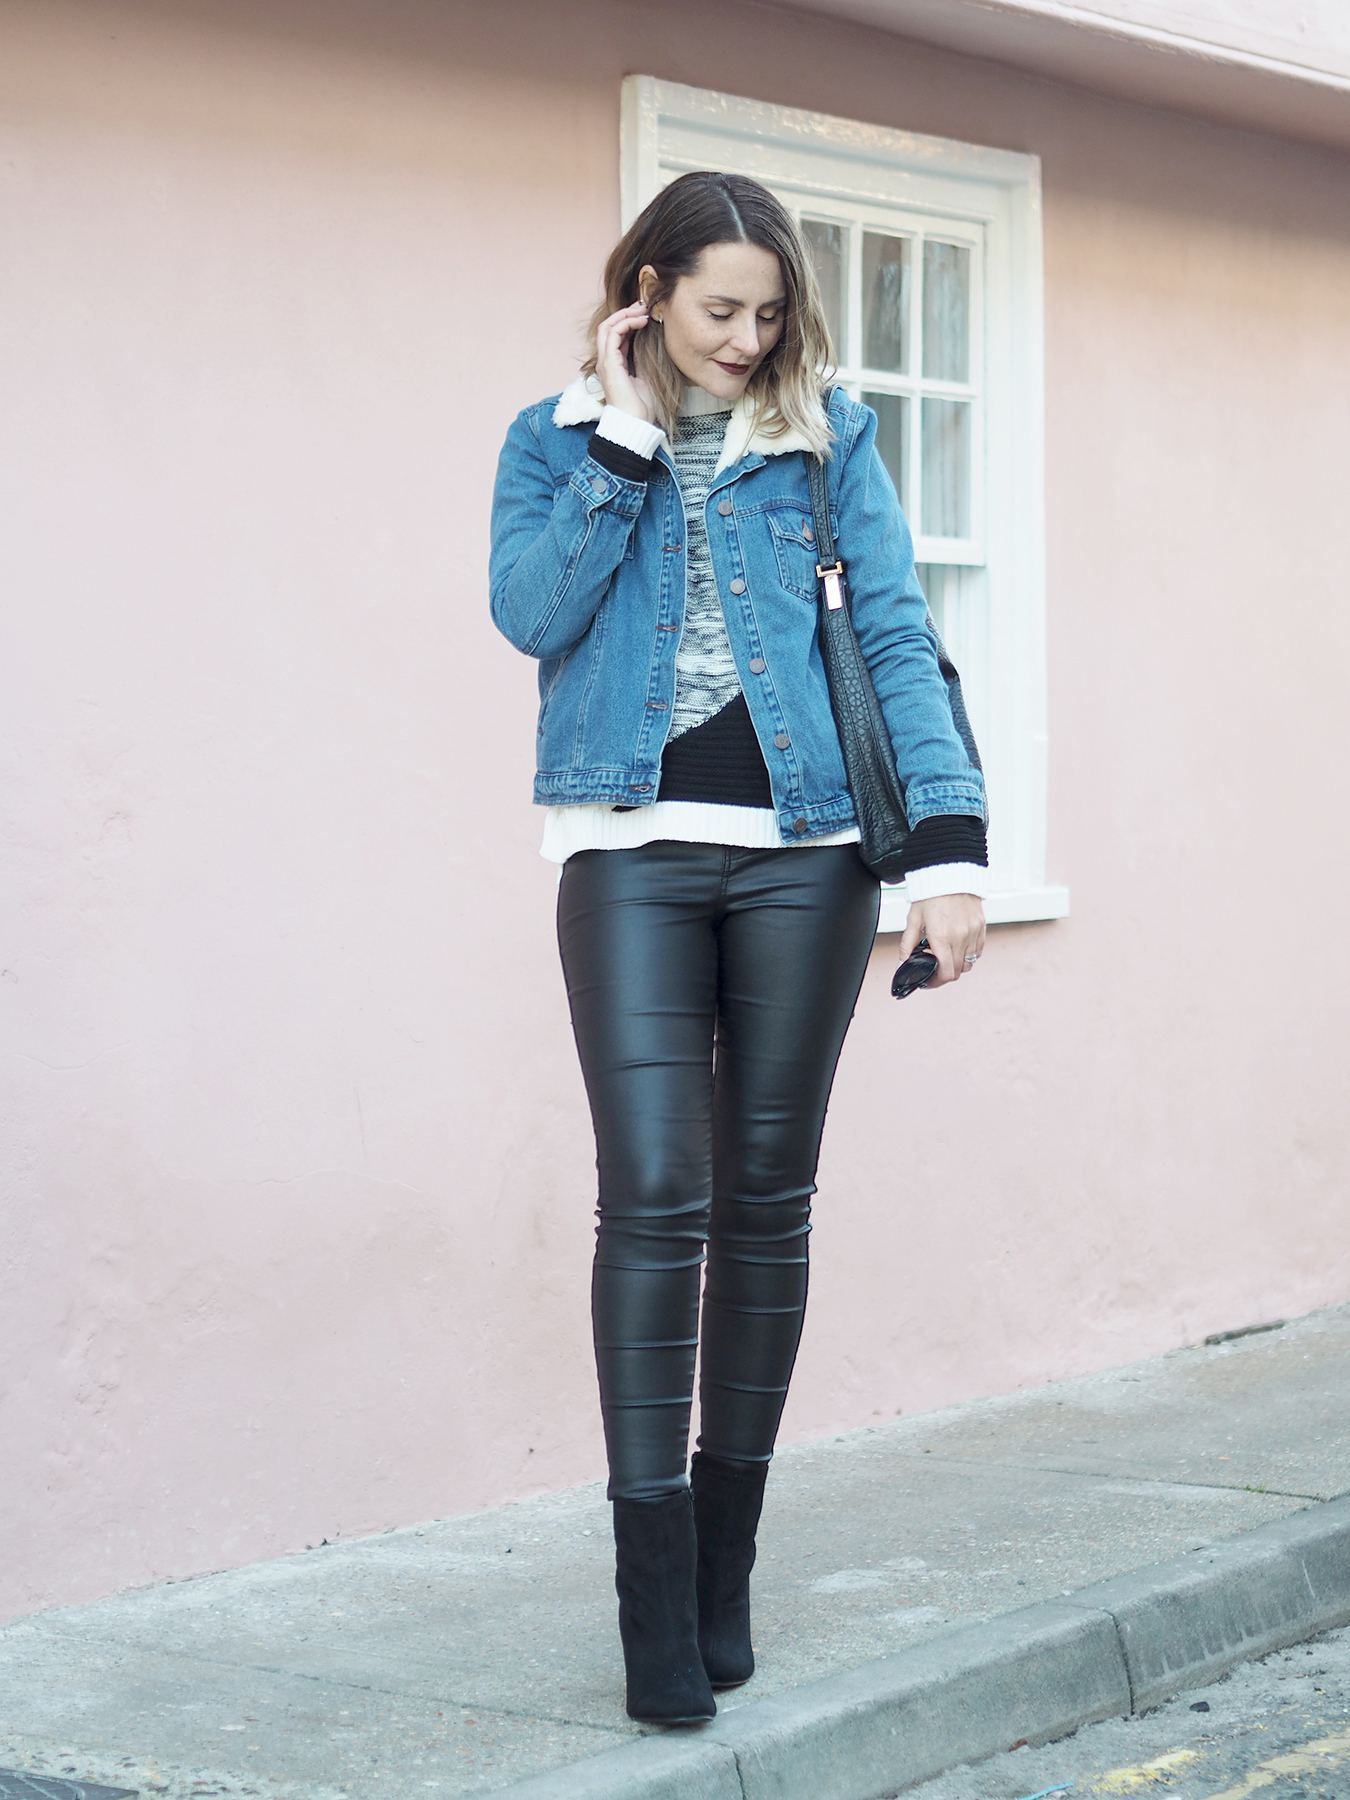 leather look jeans and boots outfit with denim jacket